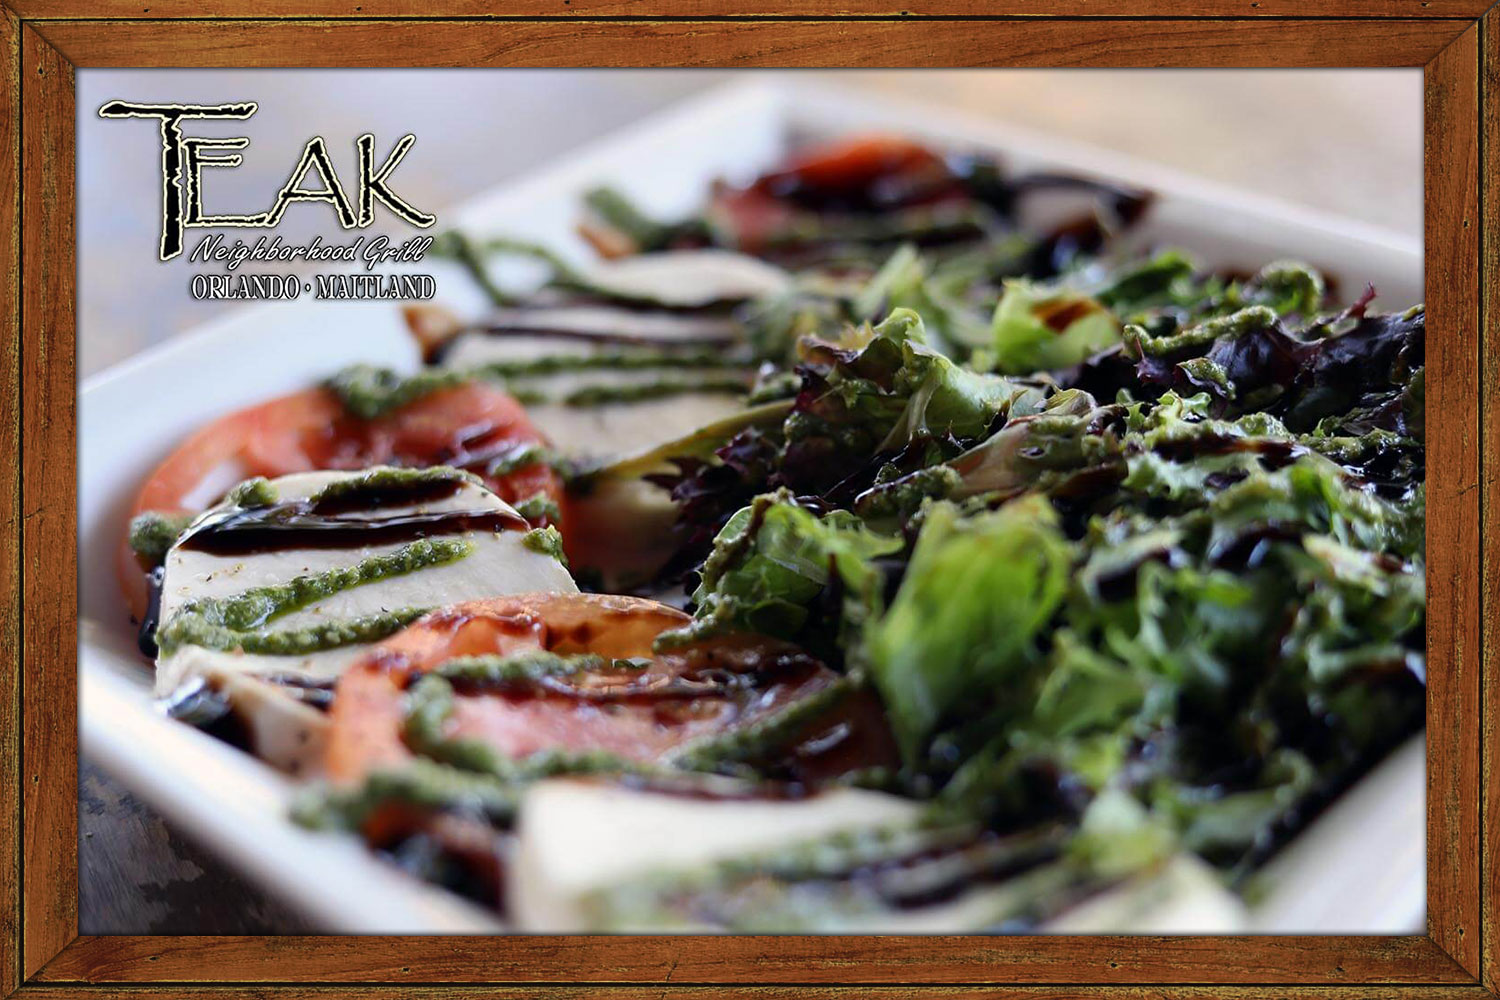 Caprese Salad with fresh tomatoes and mozzarella topped with basil pesto and balsamic glaze